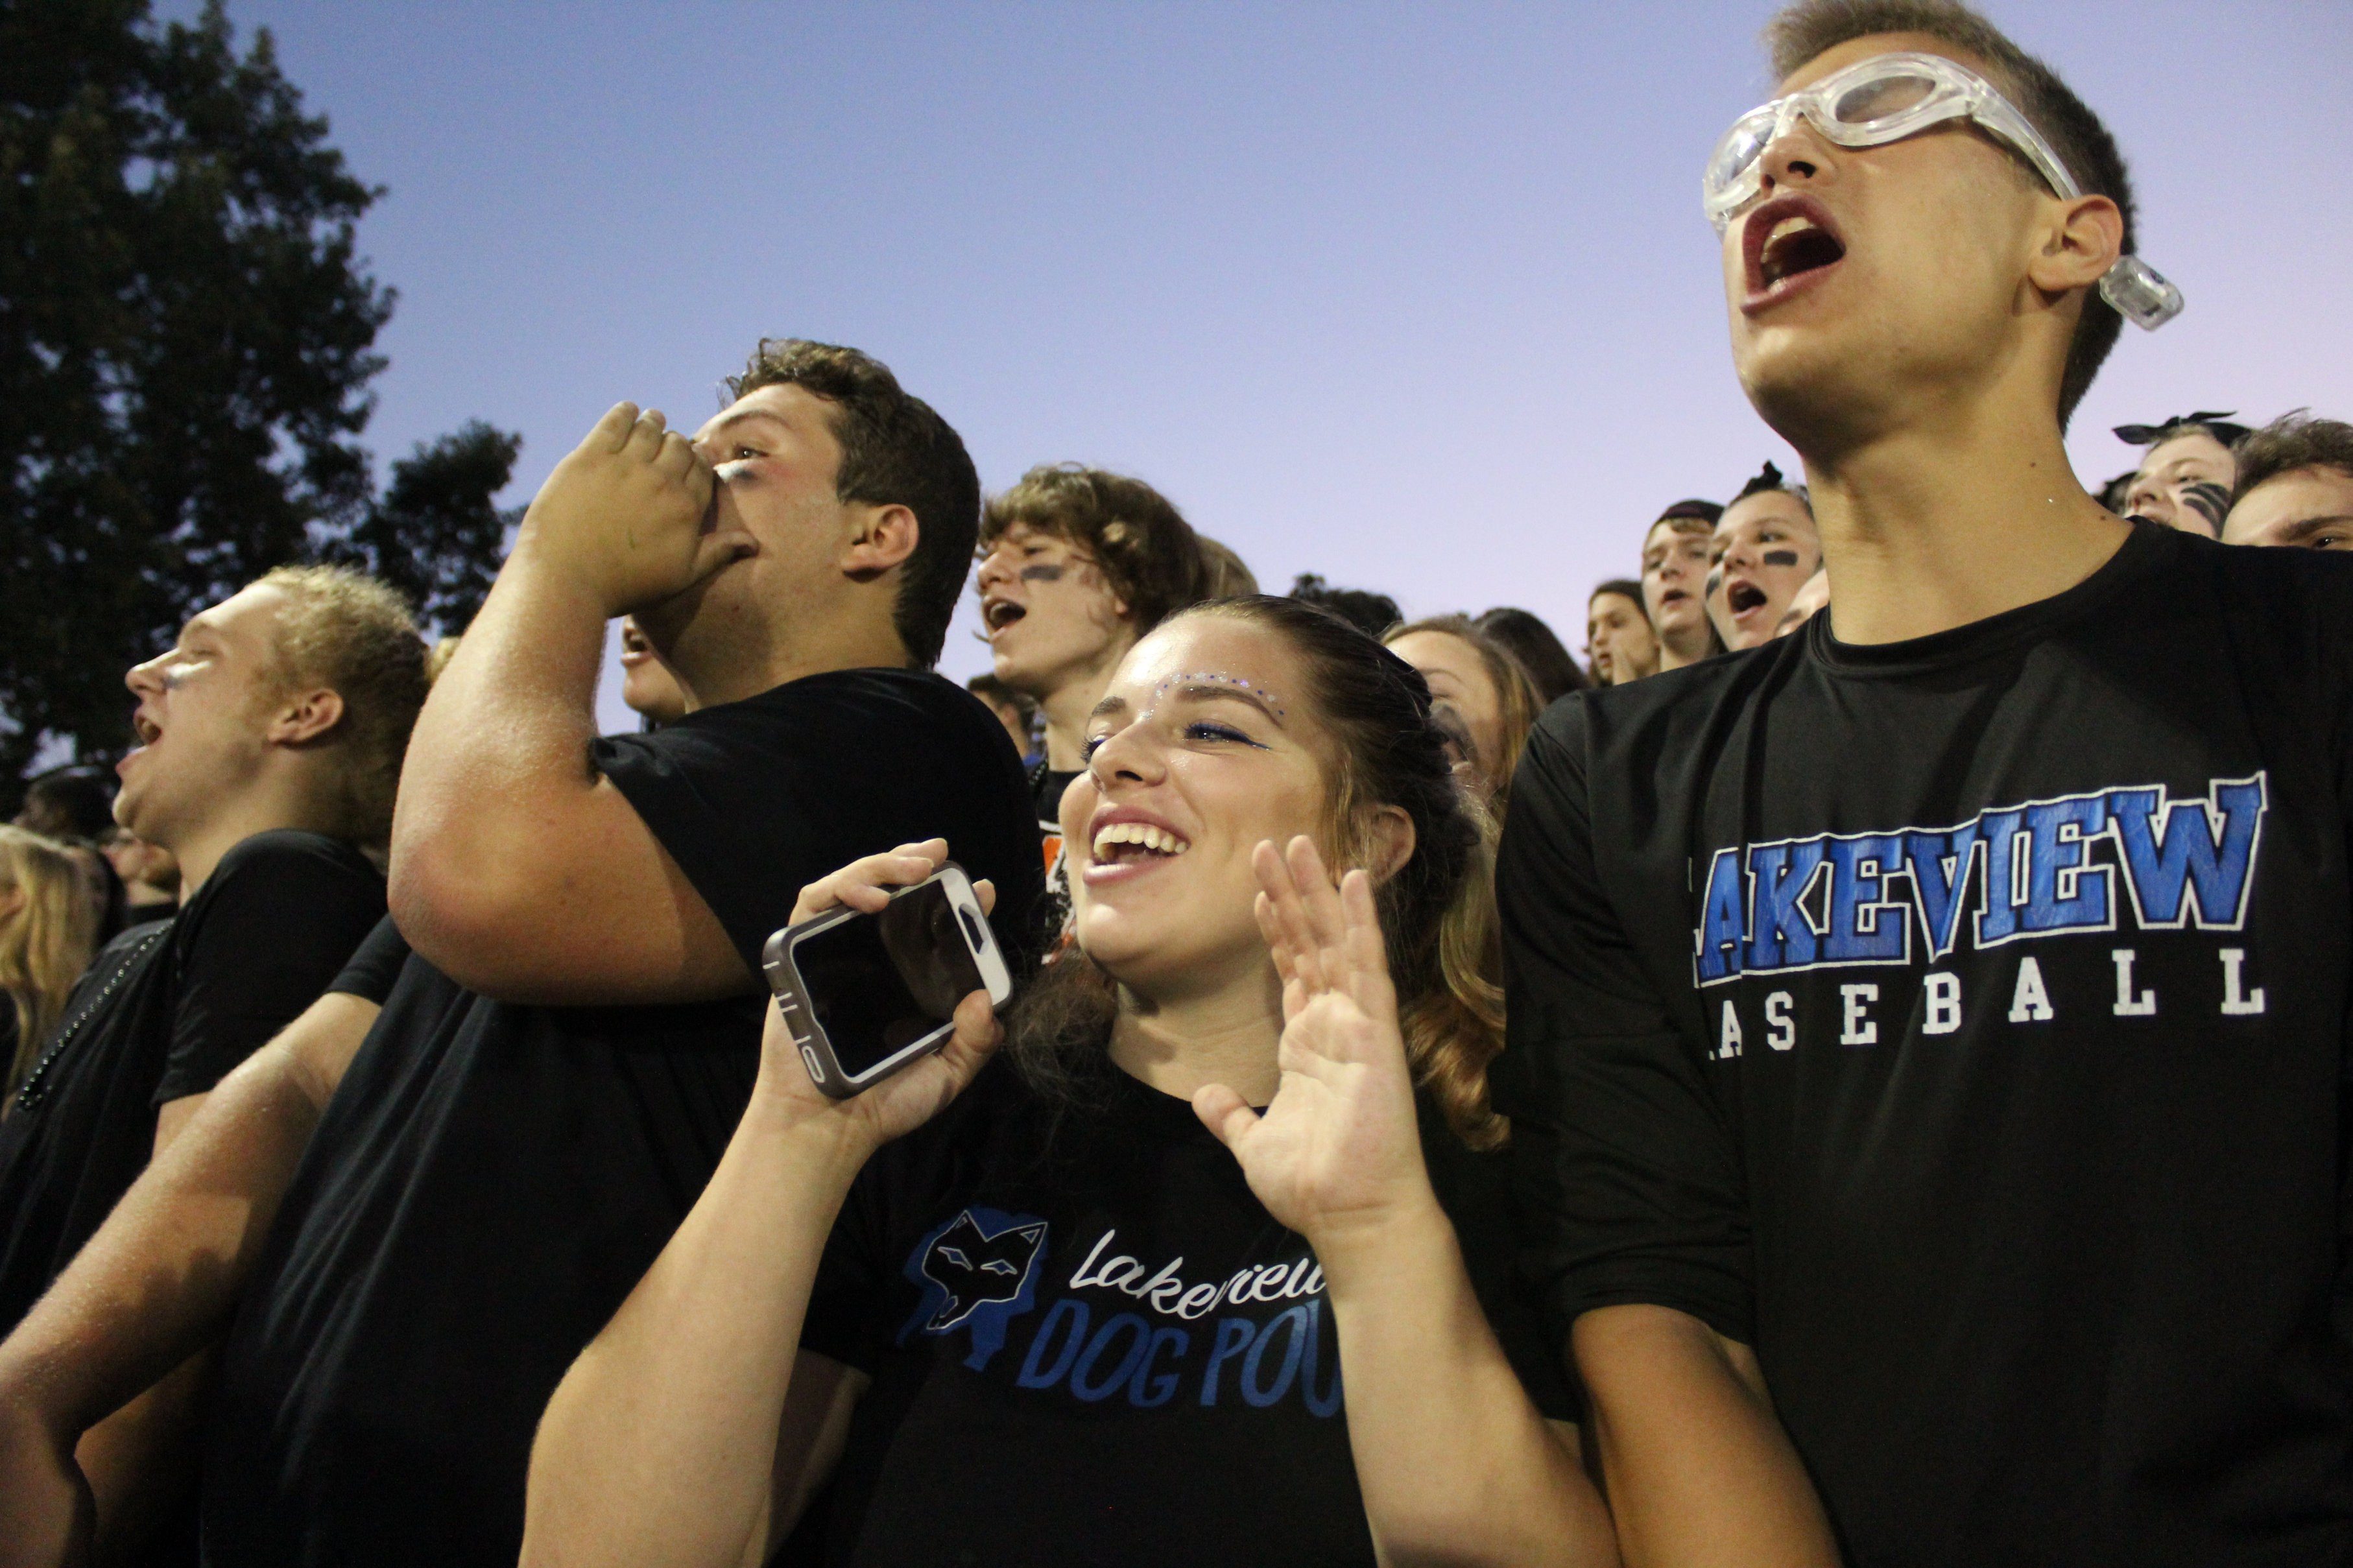 LHS students cheering during a football game